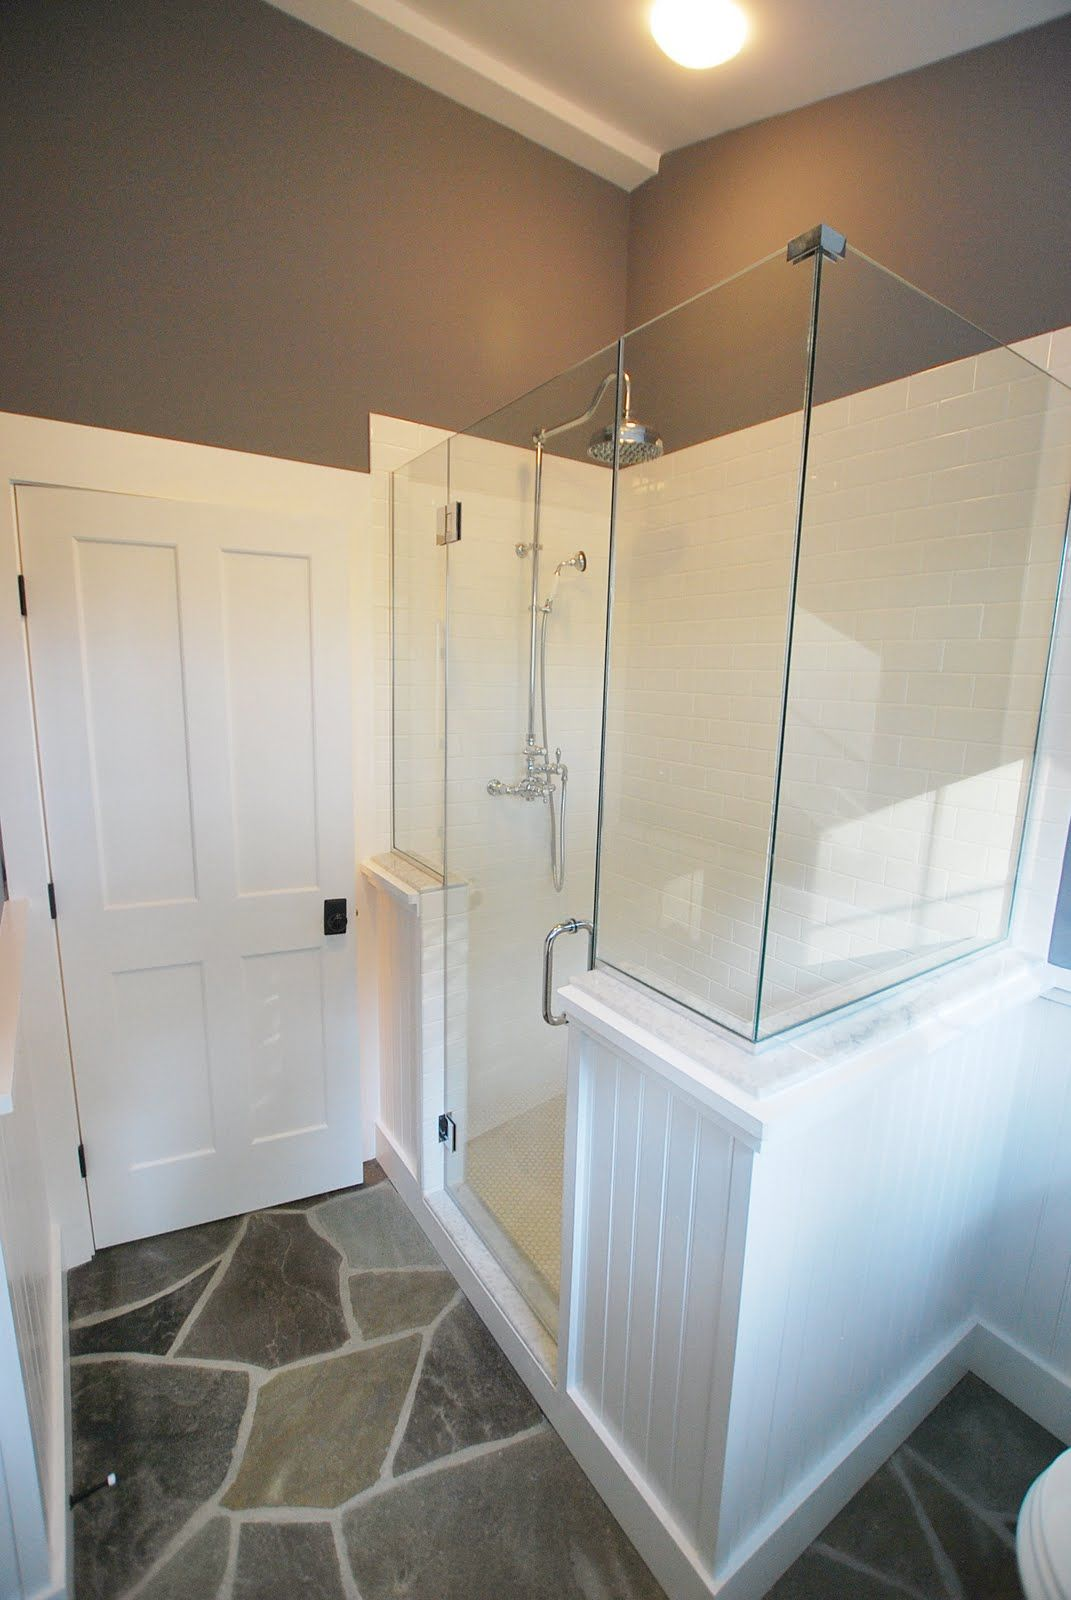 Wainscoting And Frameless Glass Shower Enclosure. Not Fond Of The Tile  Finish At The Top